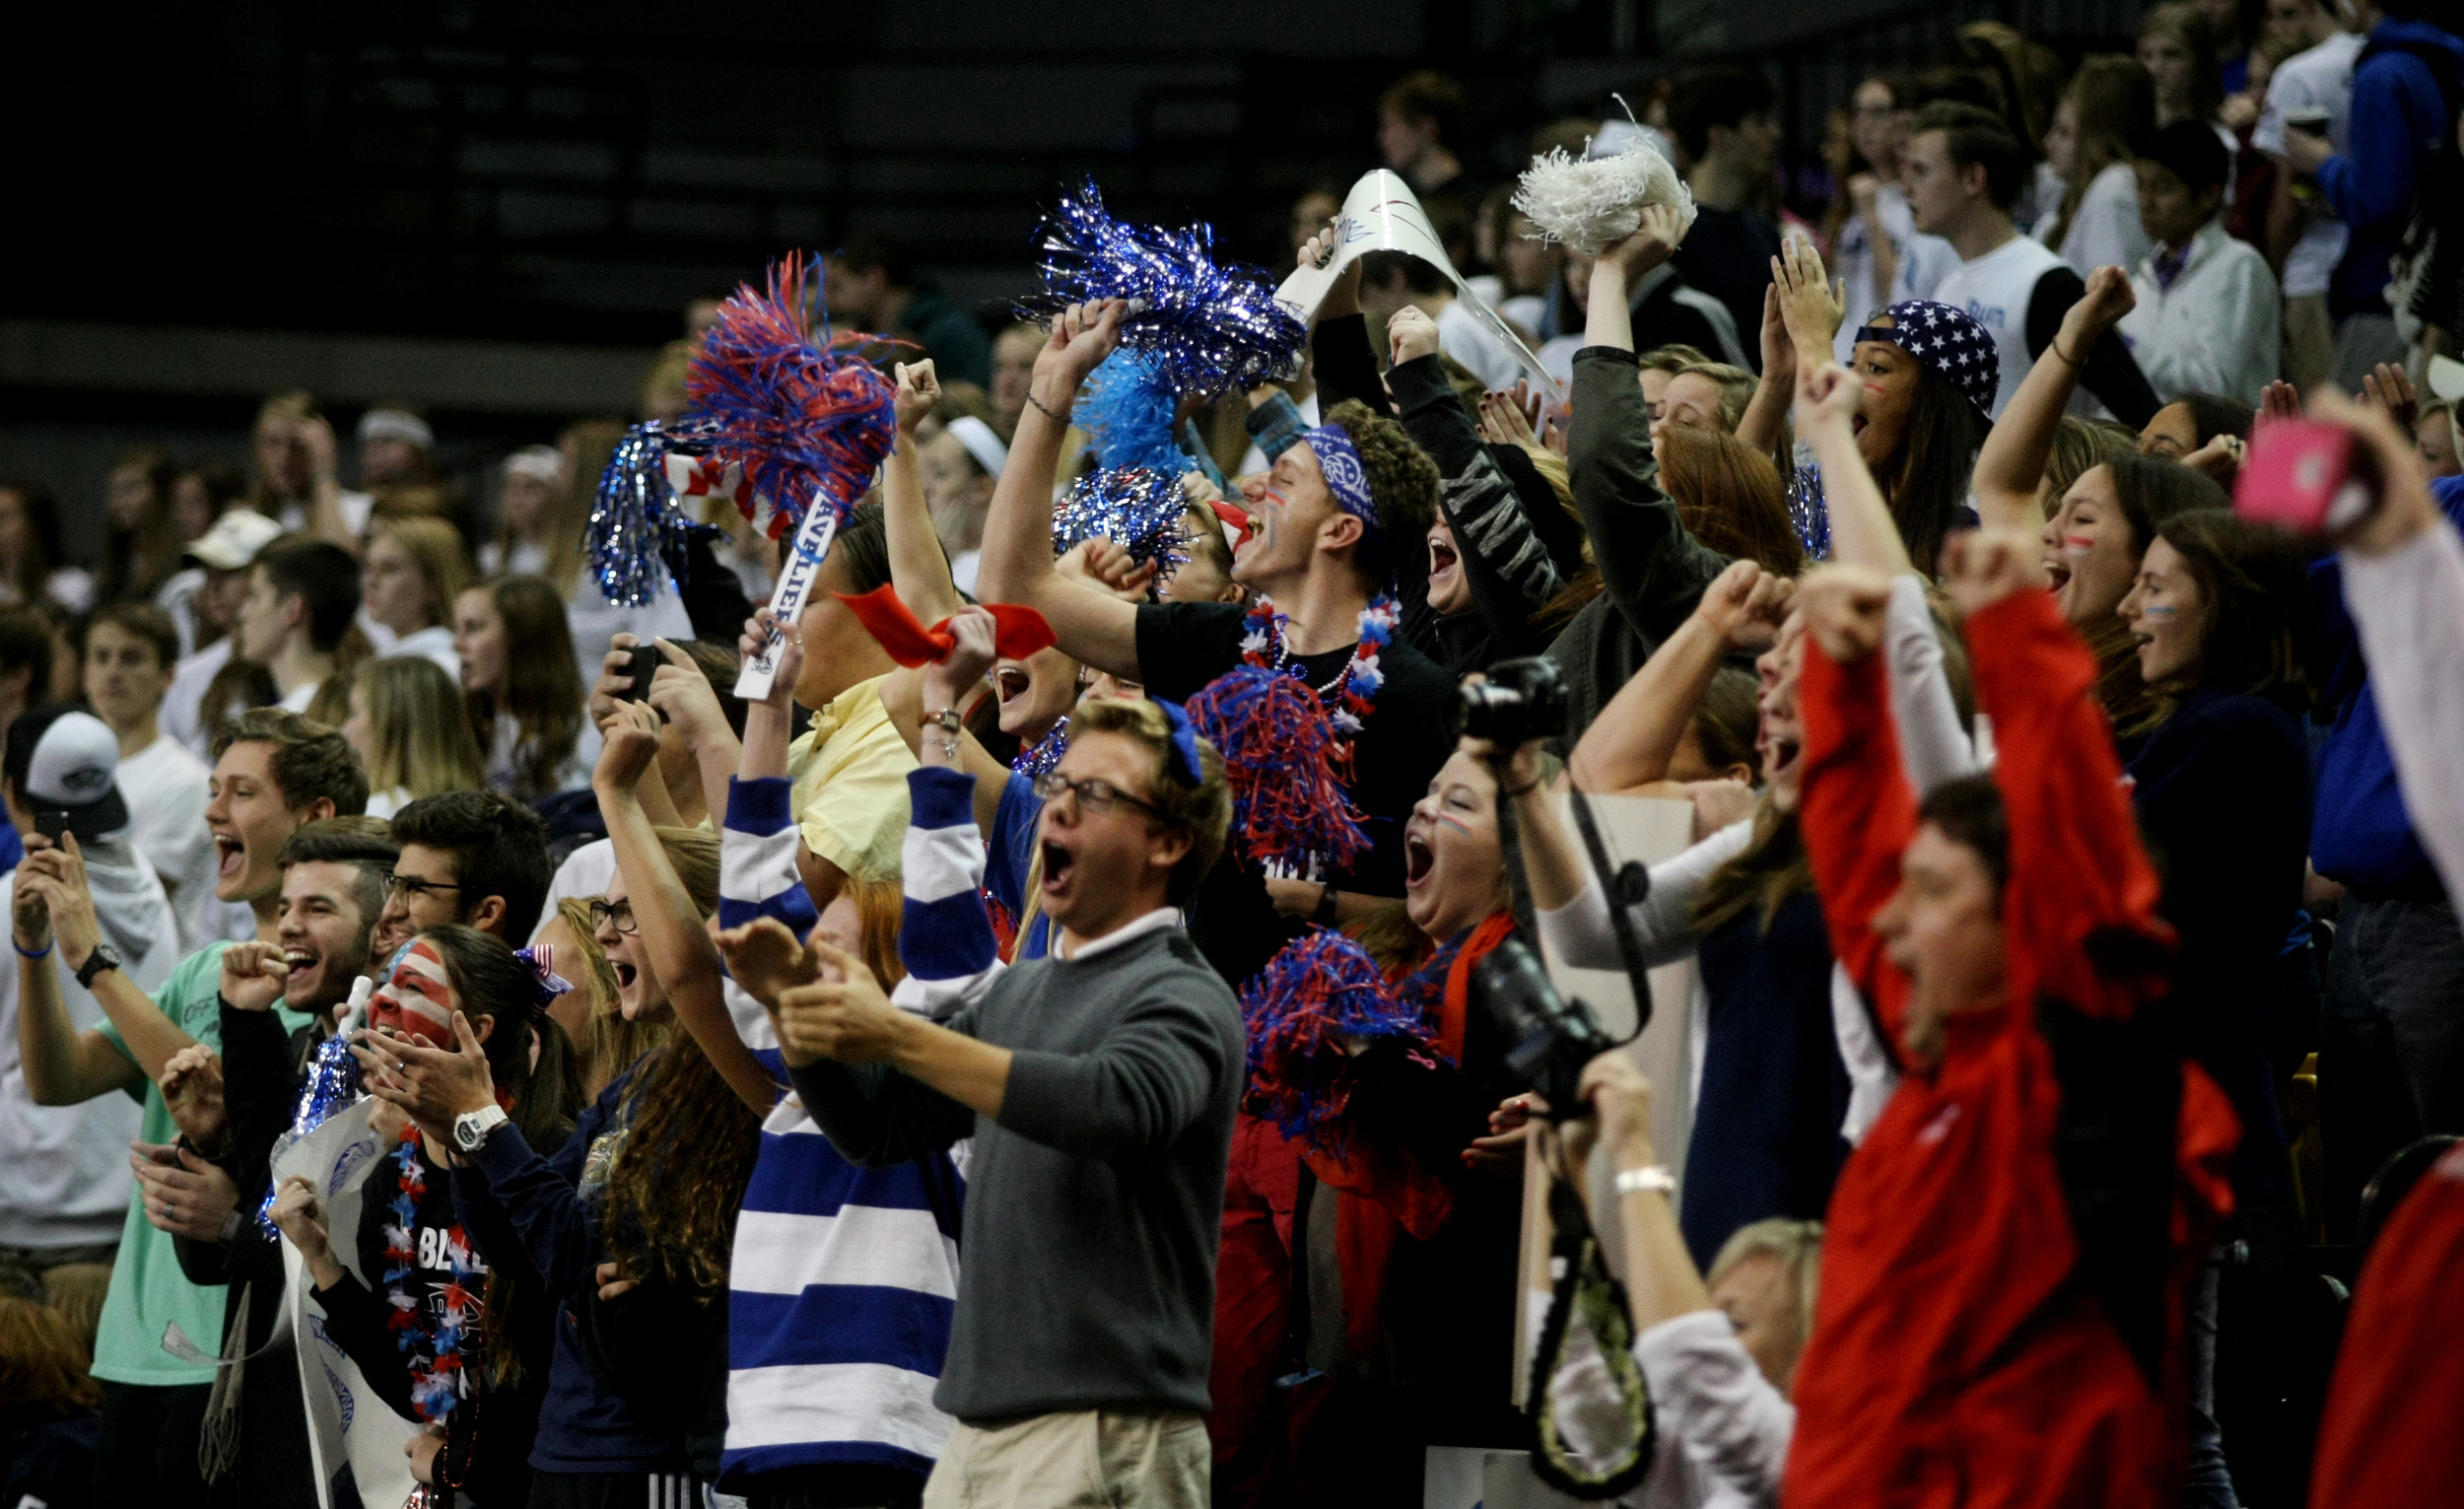 A group of Princess Anne fans cheer as they boys volleyball team beat Deep Run to claim the state championship over Deep Run, Friday, Nov. 21, 2014 at the Siegel Center in Richmond.  (Jason Hirschfeld   For The Virginian-Pilot)